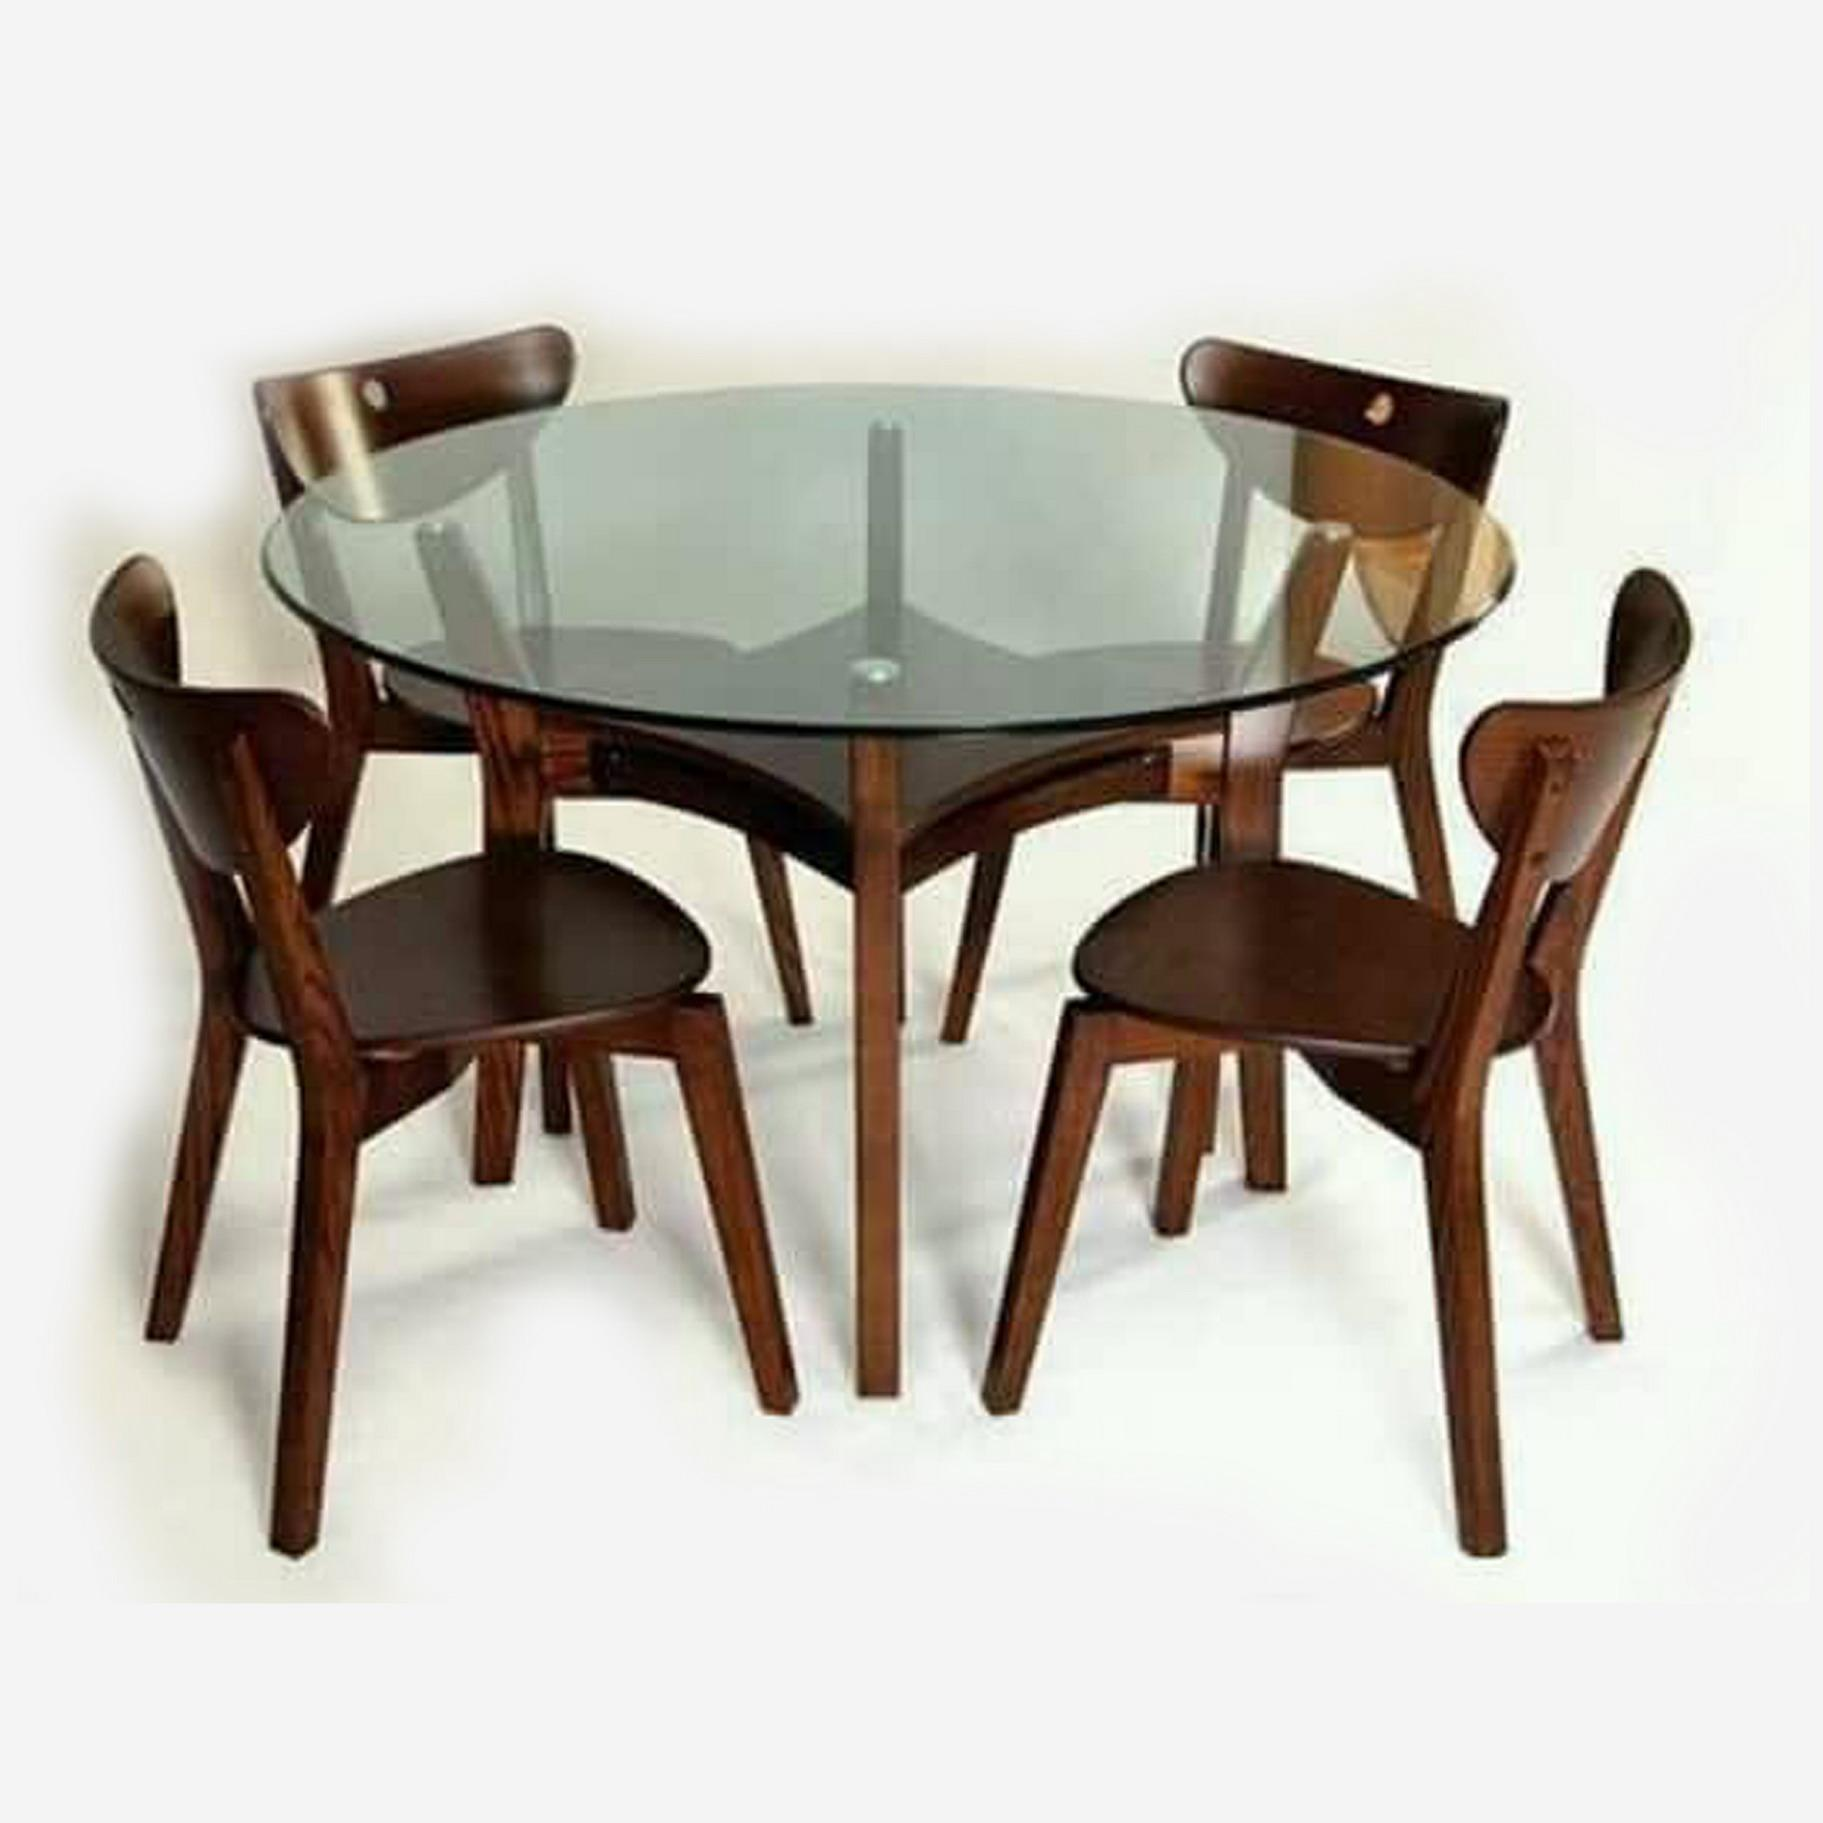 Buy 4 Home Dining Chairs At Best Prices Online In Bangladesh Daraz Com Bd